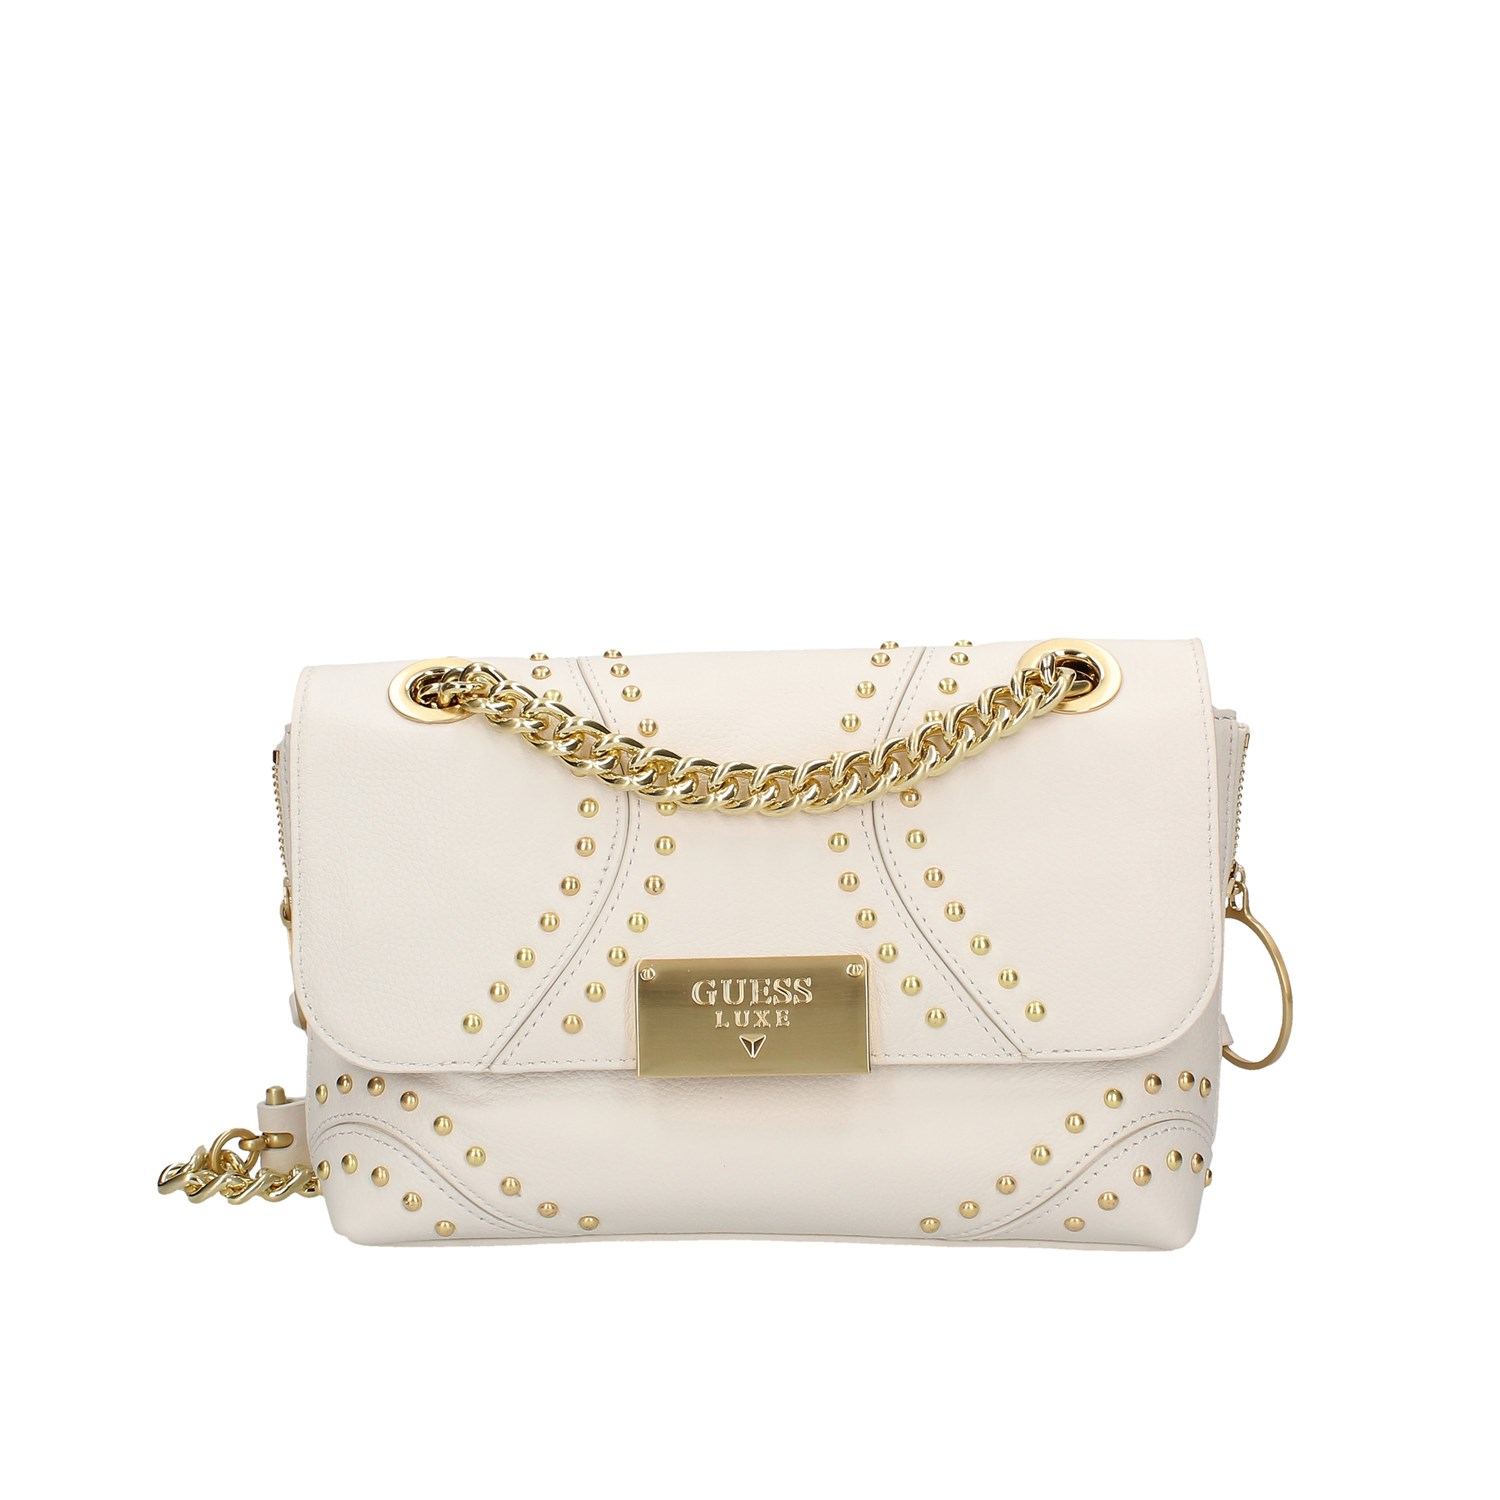 e88eee7e65 Accessories Luxe Tracolla Guess AvorioDonna Vicky Stage R5AjL4